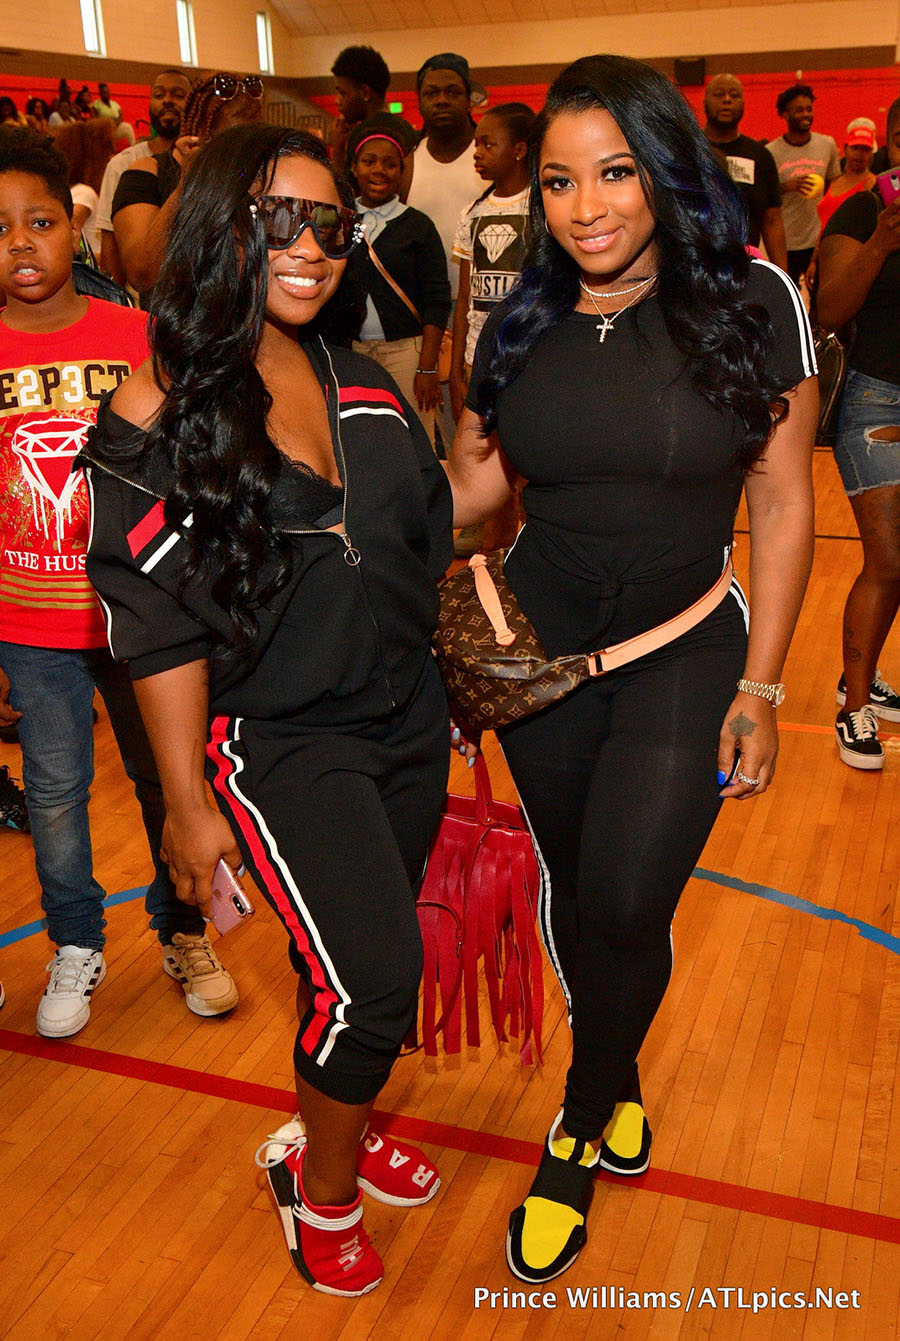 Celebs Out & About: Reginae Carter and YFN Lucci Backpack